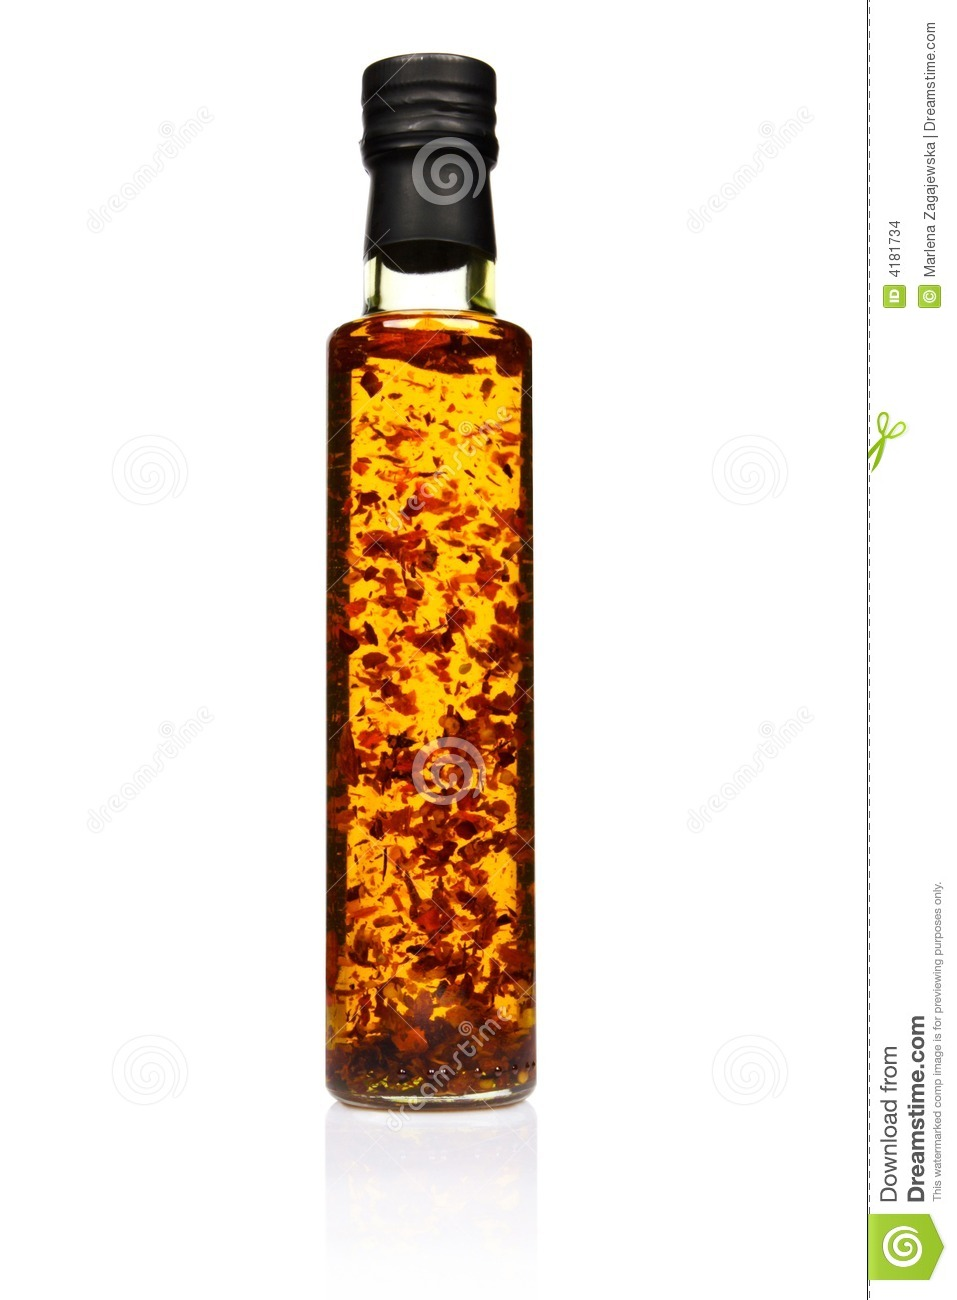 Bottle Of Spicy Olive Oil Stock Images  Image 4181734